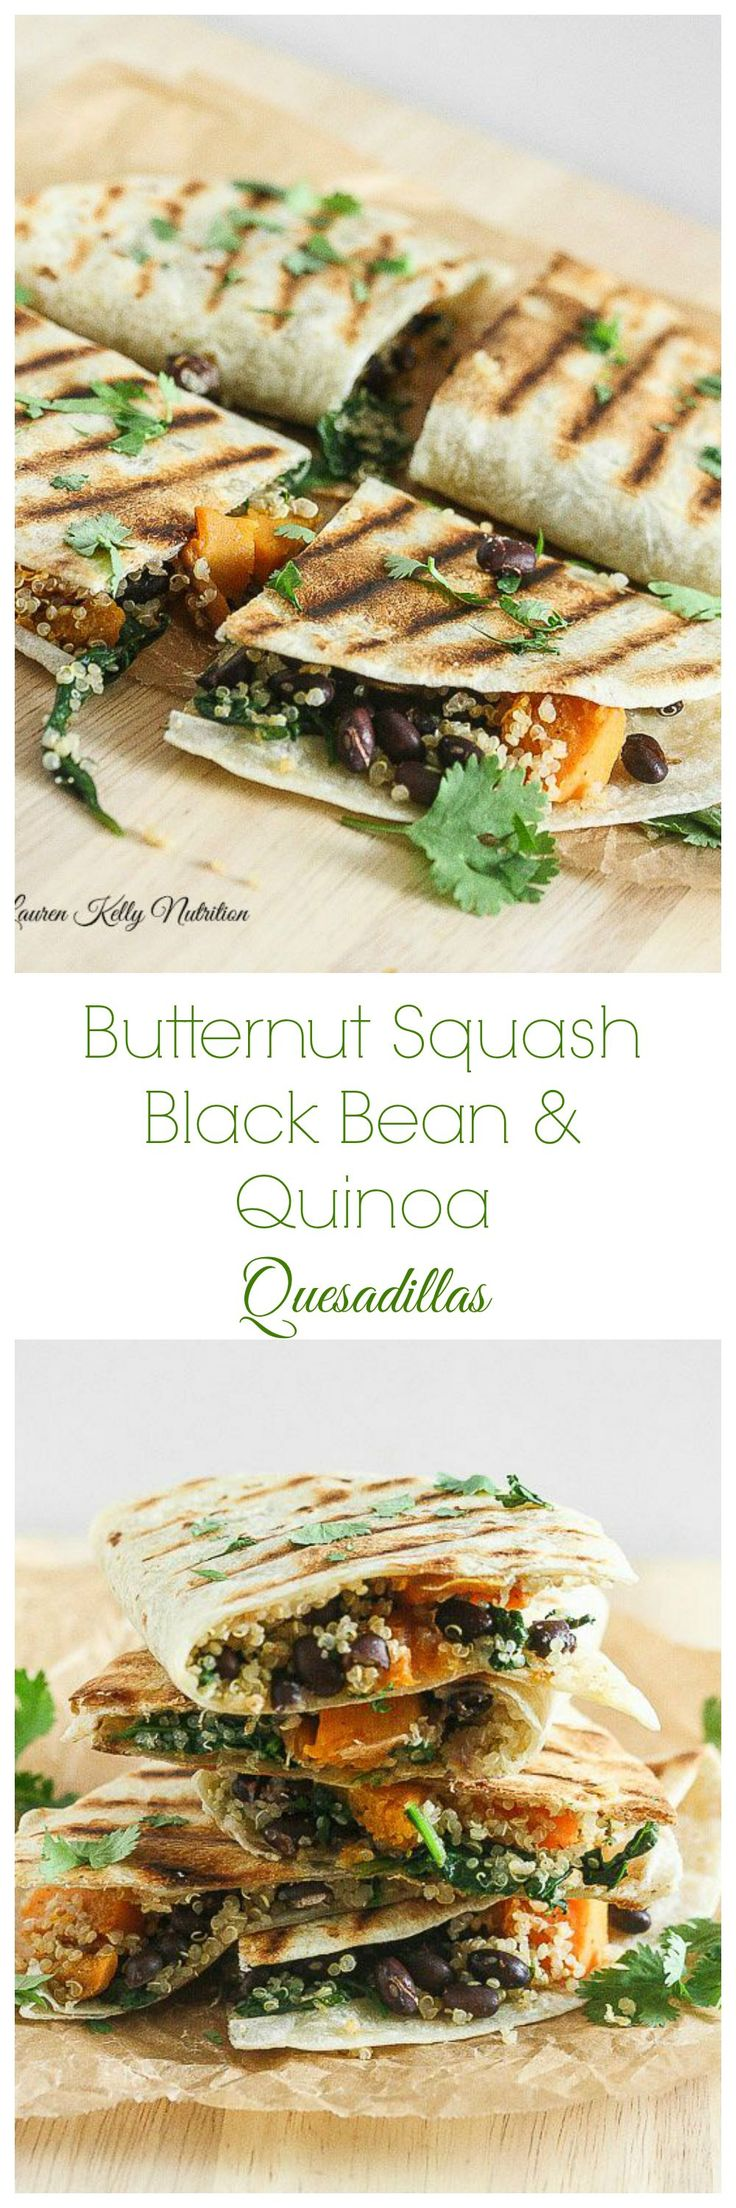 These Butternut Squash Black Bean & Quinoa Quesadillas are delicious and…